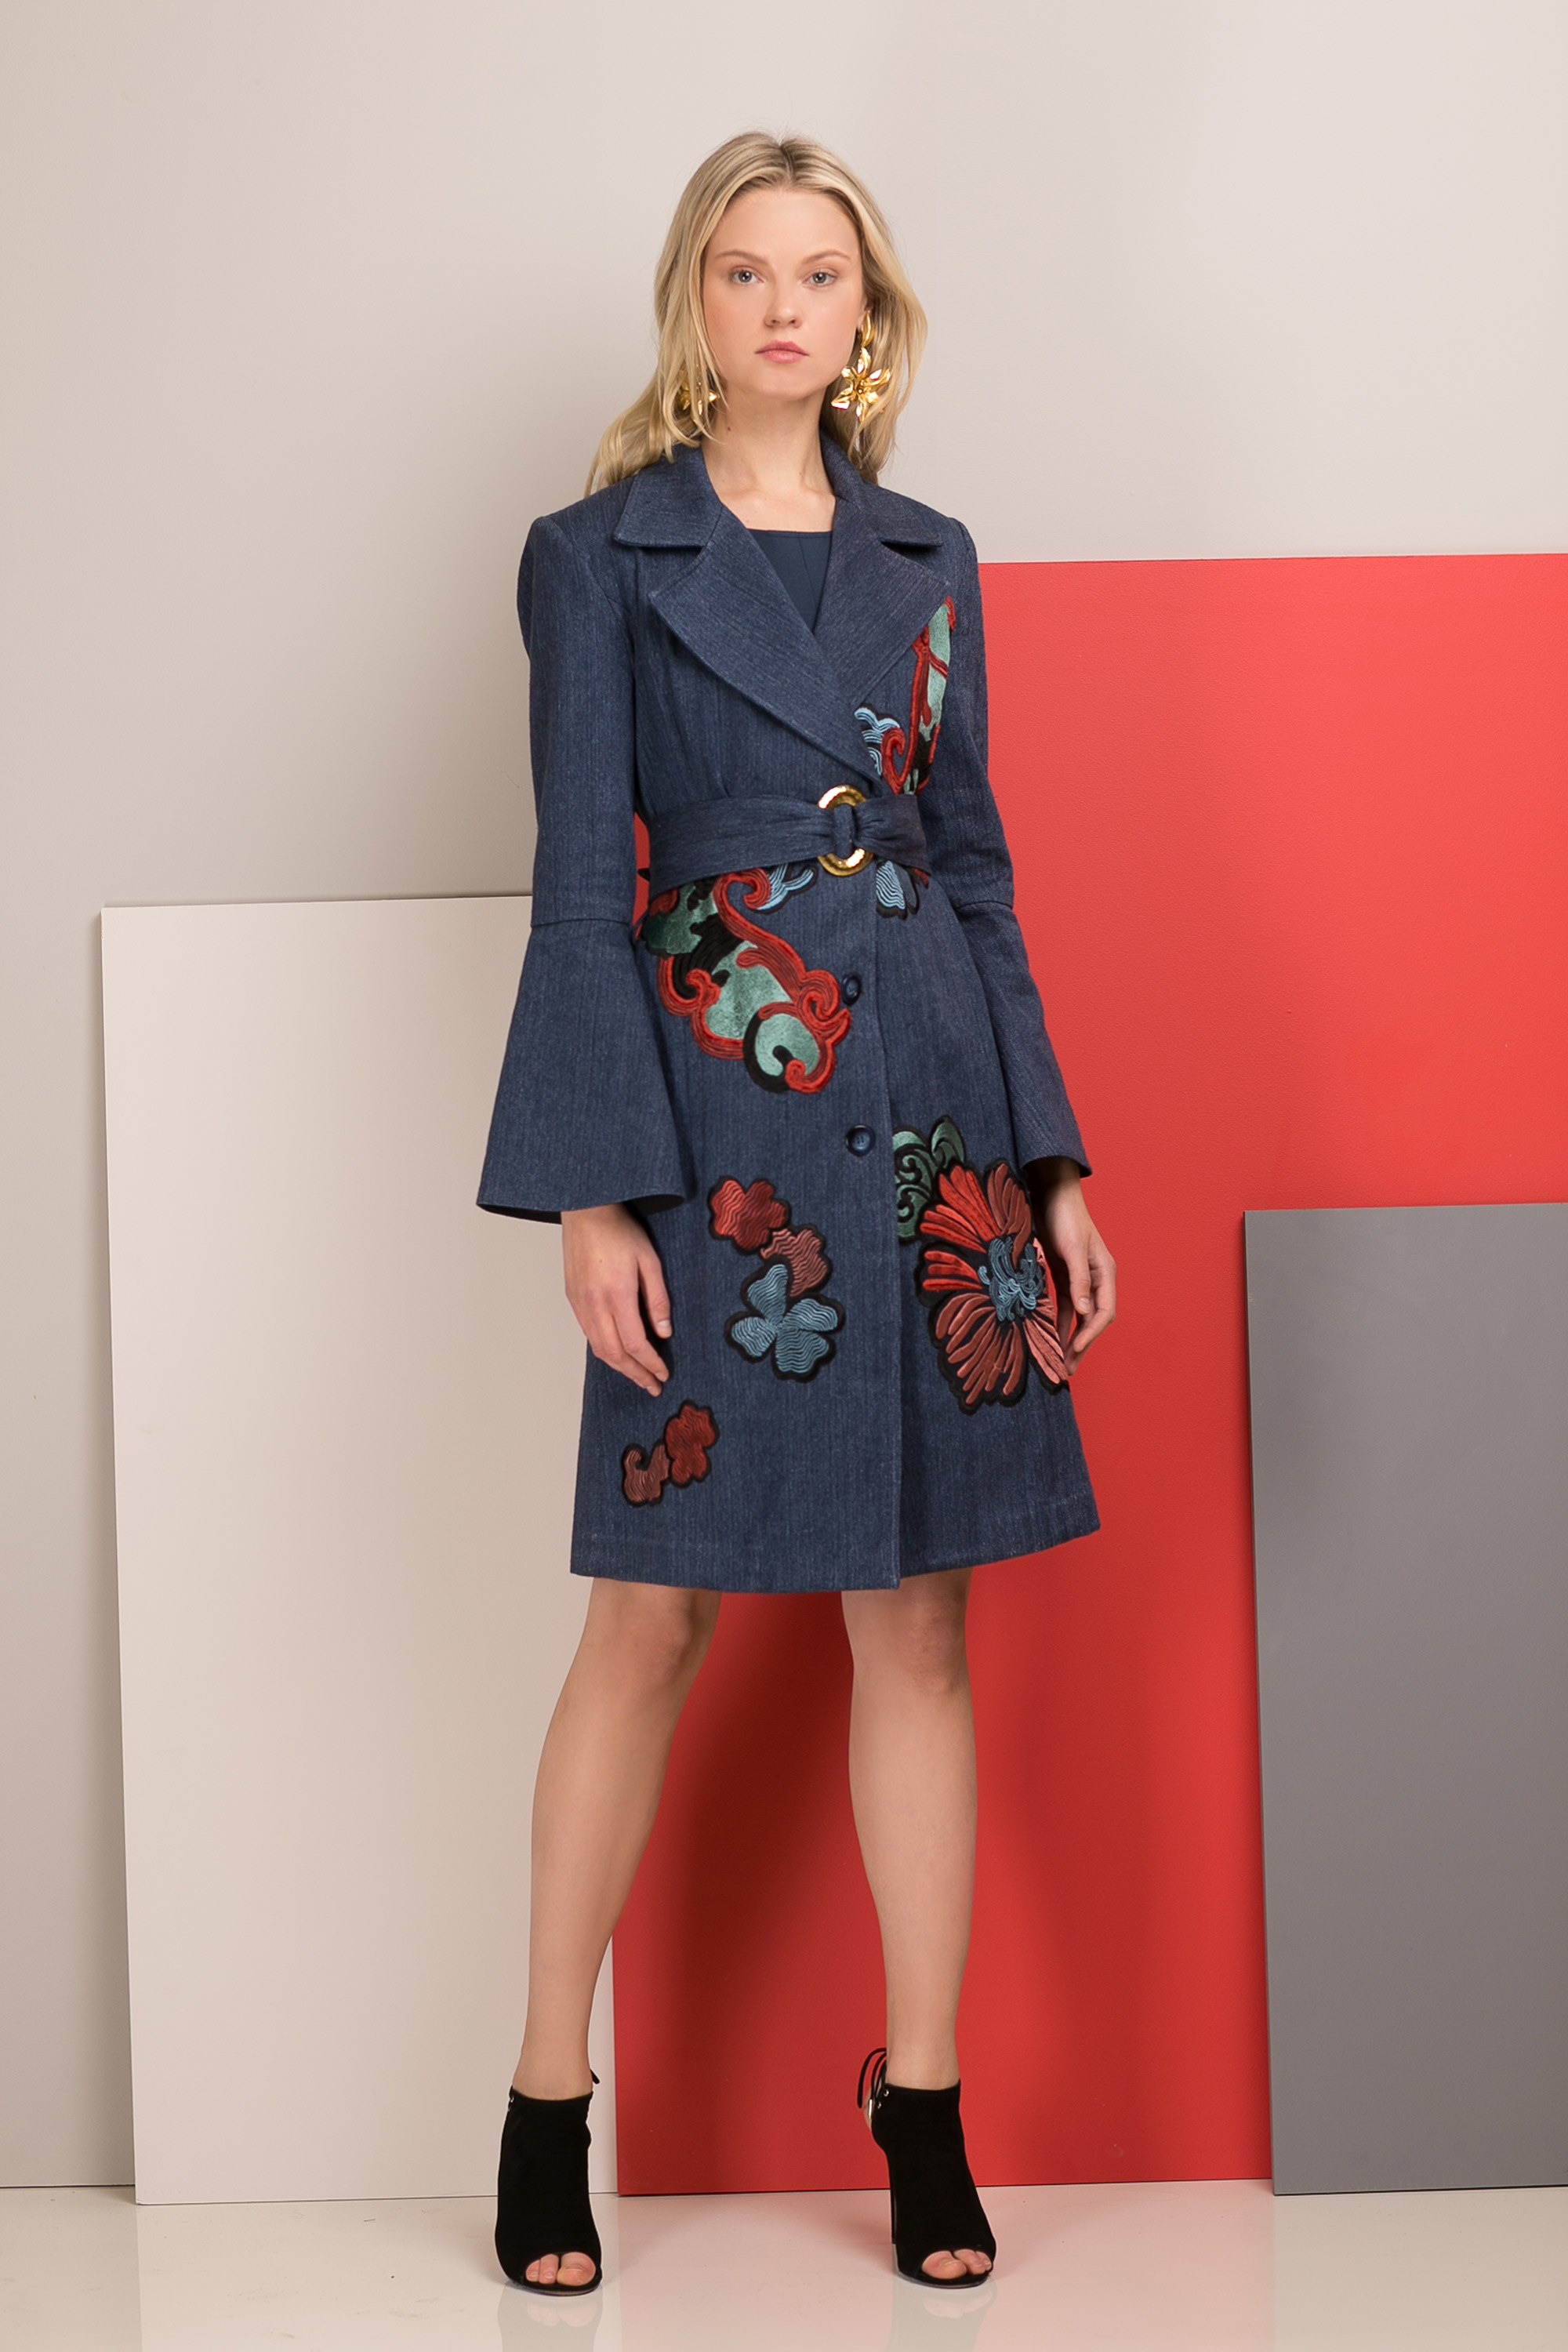 josie-natori-pre-fall-2017-fashion-show-the-impression-14